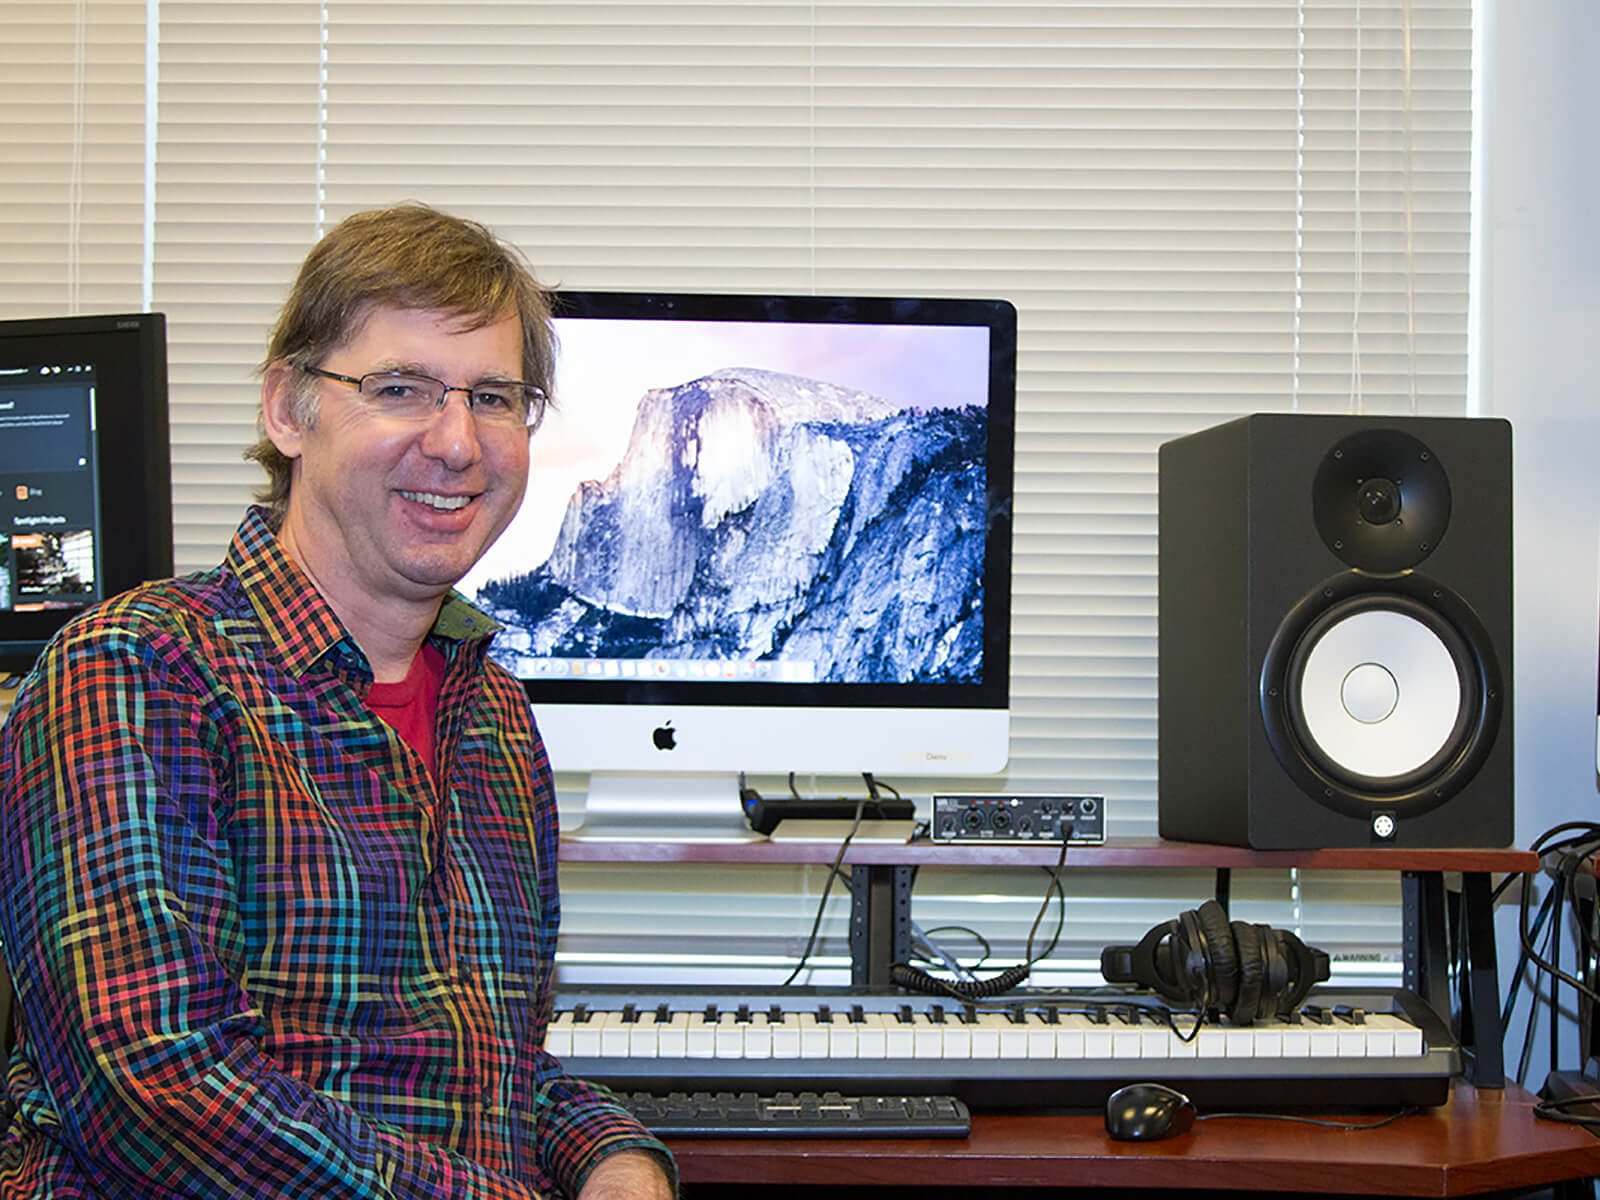 DigiPen music senior lecturer Brian Schmidt sits in front of a computer in the DigiPen sound lab